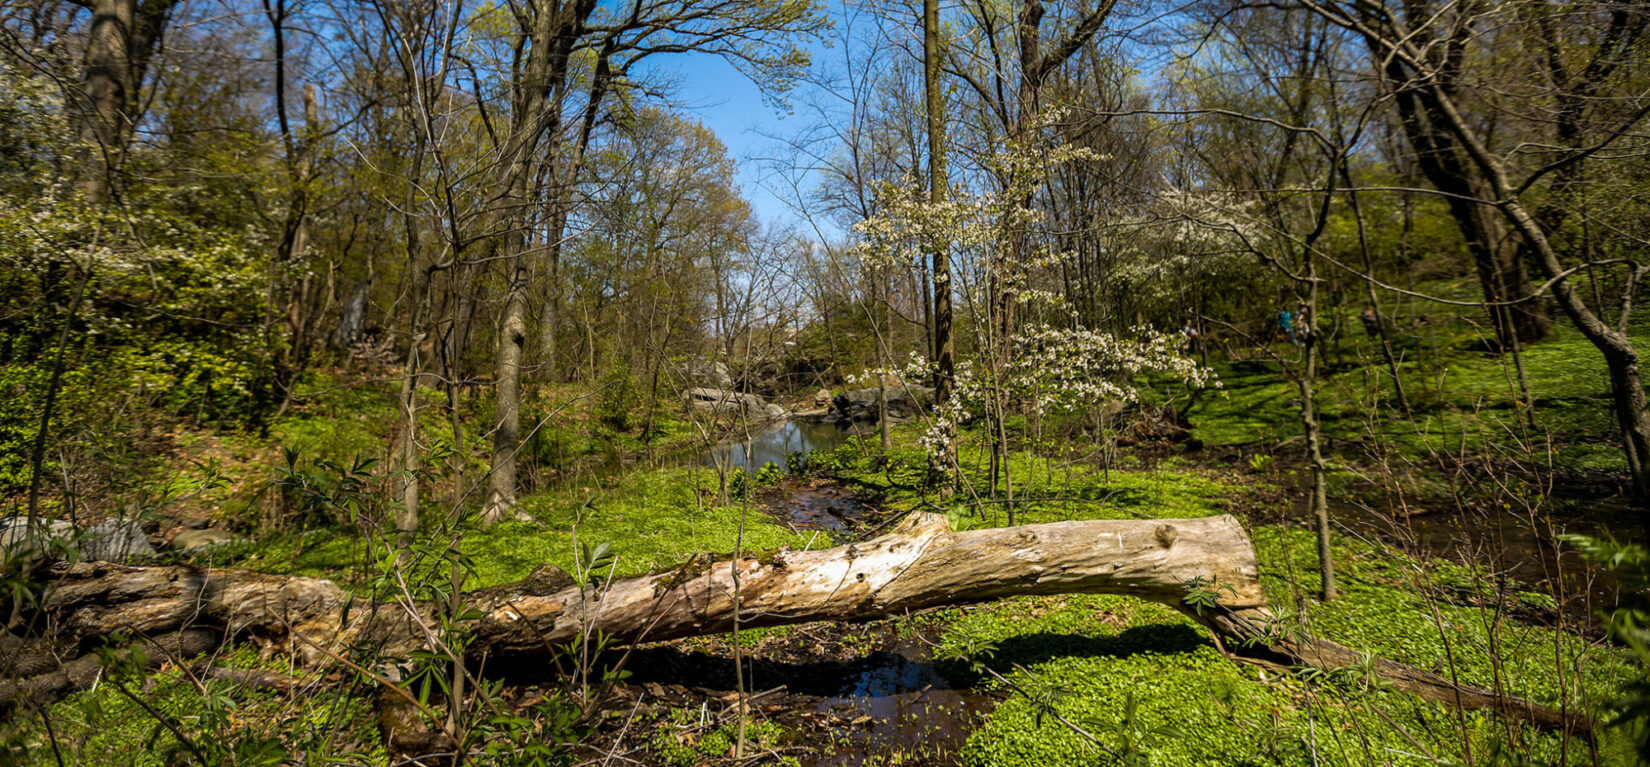 A spring scene with a fallen log spanning a small stream